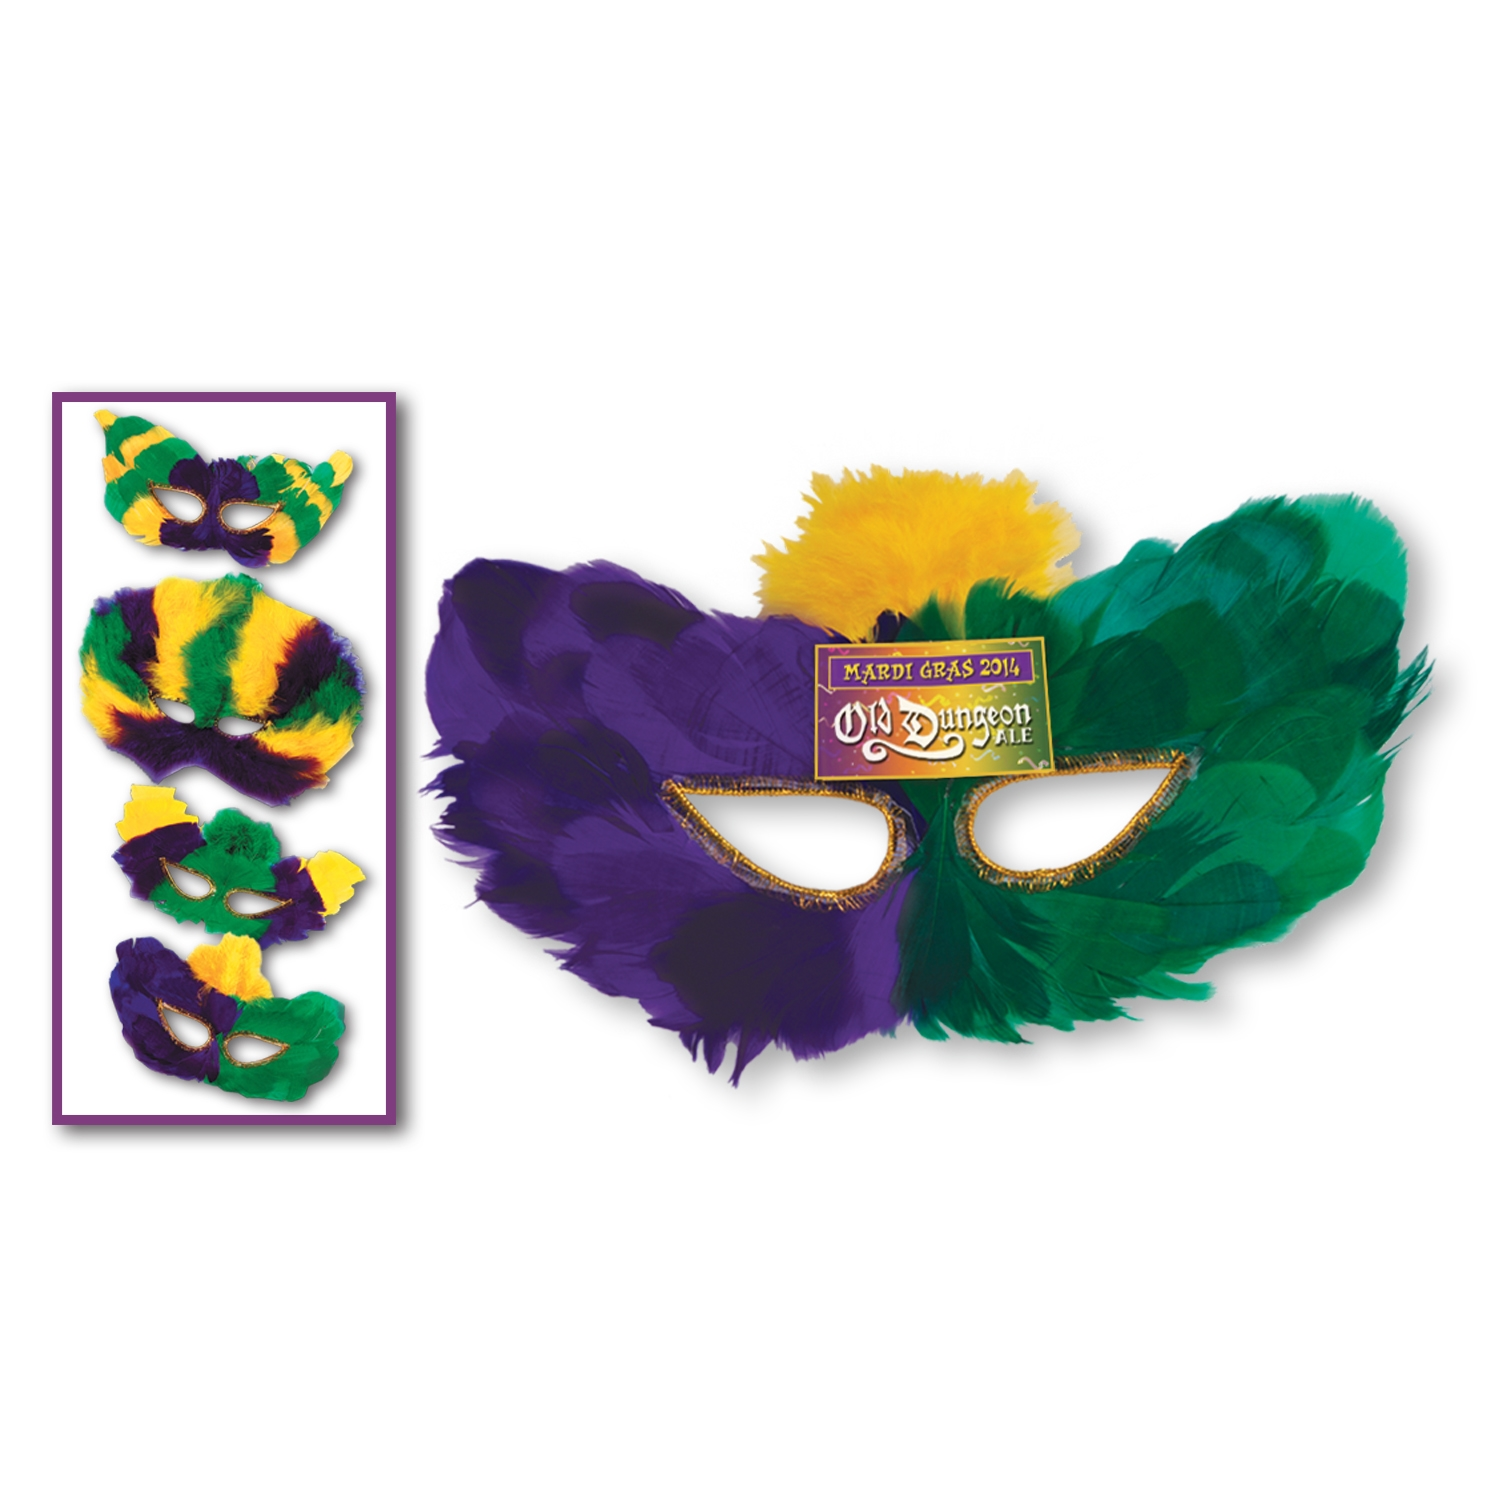 Custom Mardi Gras Fanci-Feather Mask Assortment Custom Mardi Gras Fanci-Feather Mask Assortment, mask, mardi gras, custom, party favor, wholesale, decoration, inexpensive, bulk